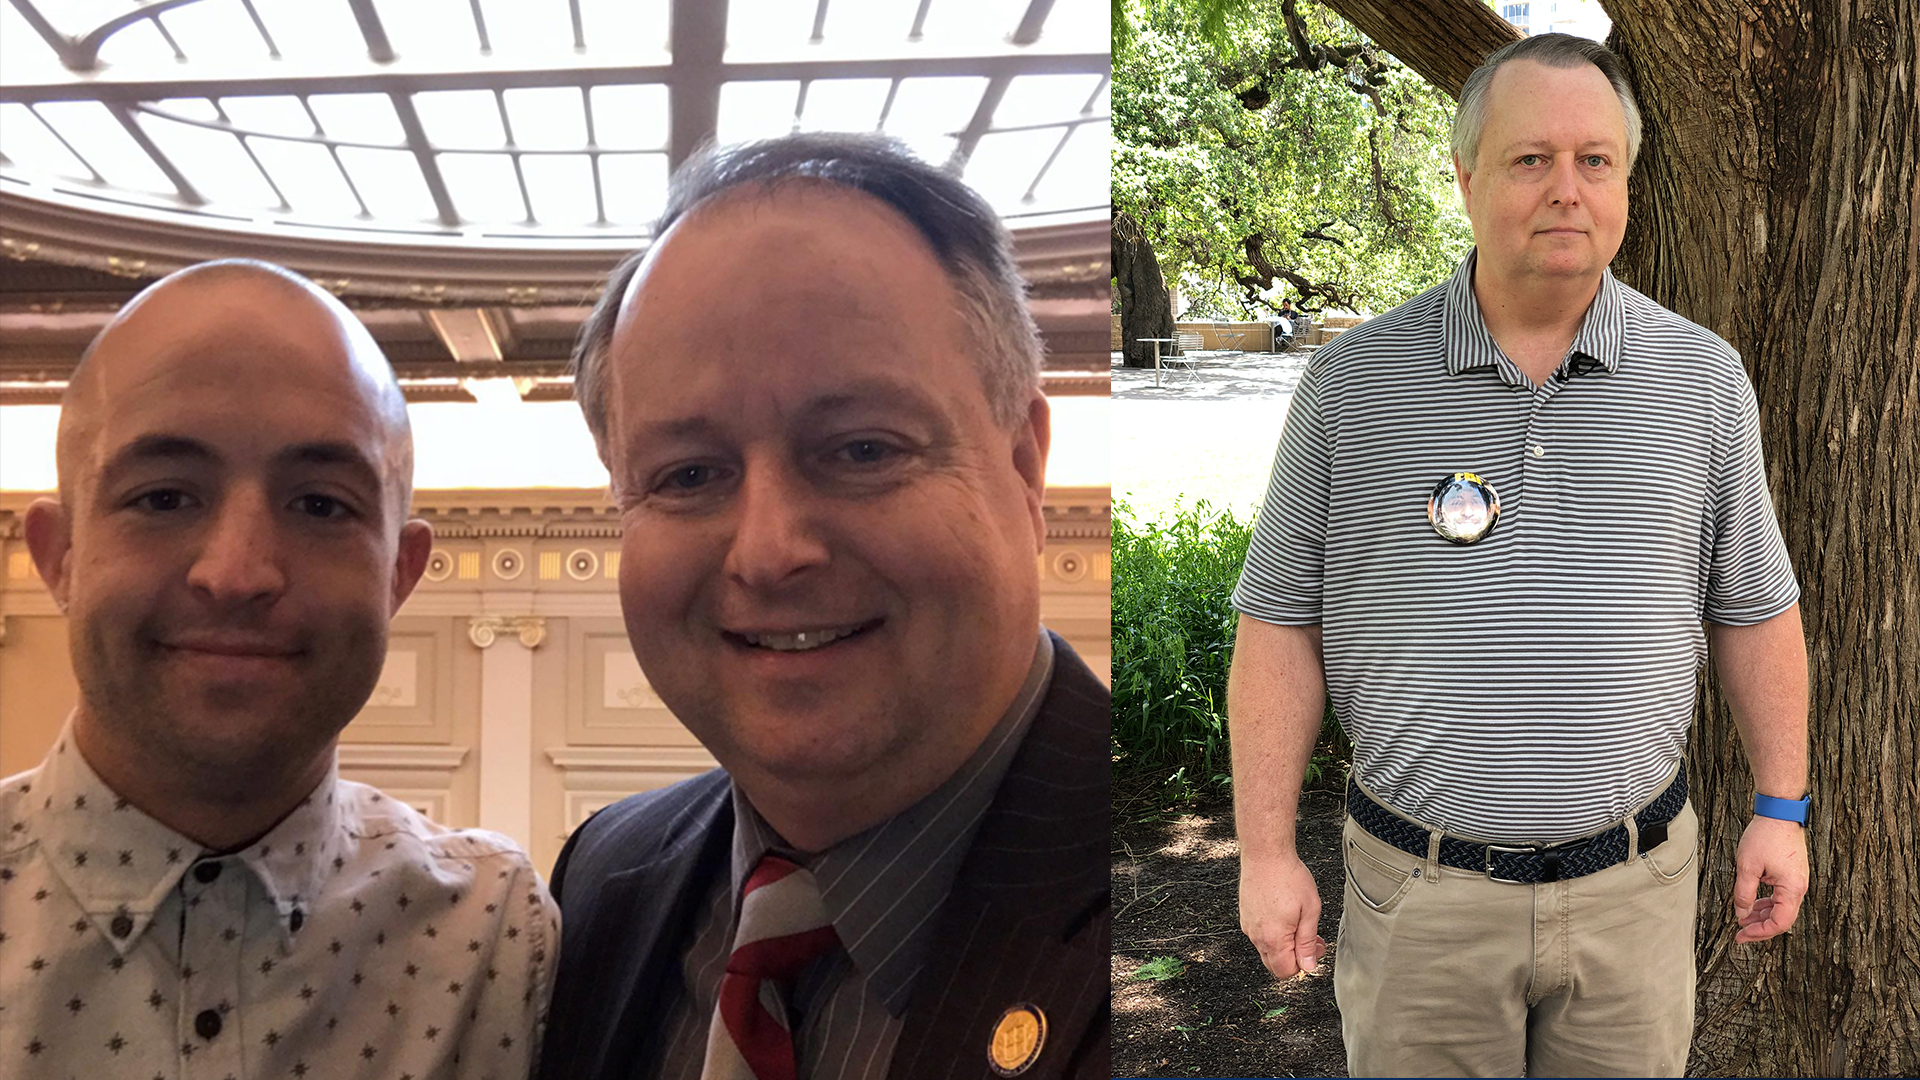 John Bell, a Virginia State senator, shared a photo from when his son volunteered with him while serving in the Virginia House of Delegates. In June, Bell attended an APALD rally in downtown Austin. Bell's son, Joshua, took a pill laced with fentanyl, overdosed and died in 2019. (Courtesy John Bell & KXAN Photo/David Barer)